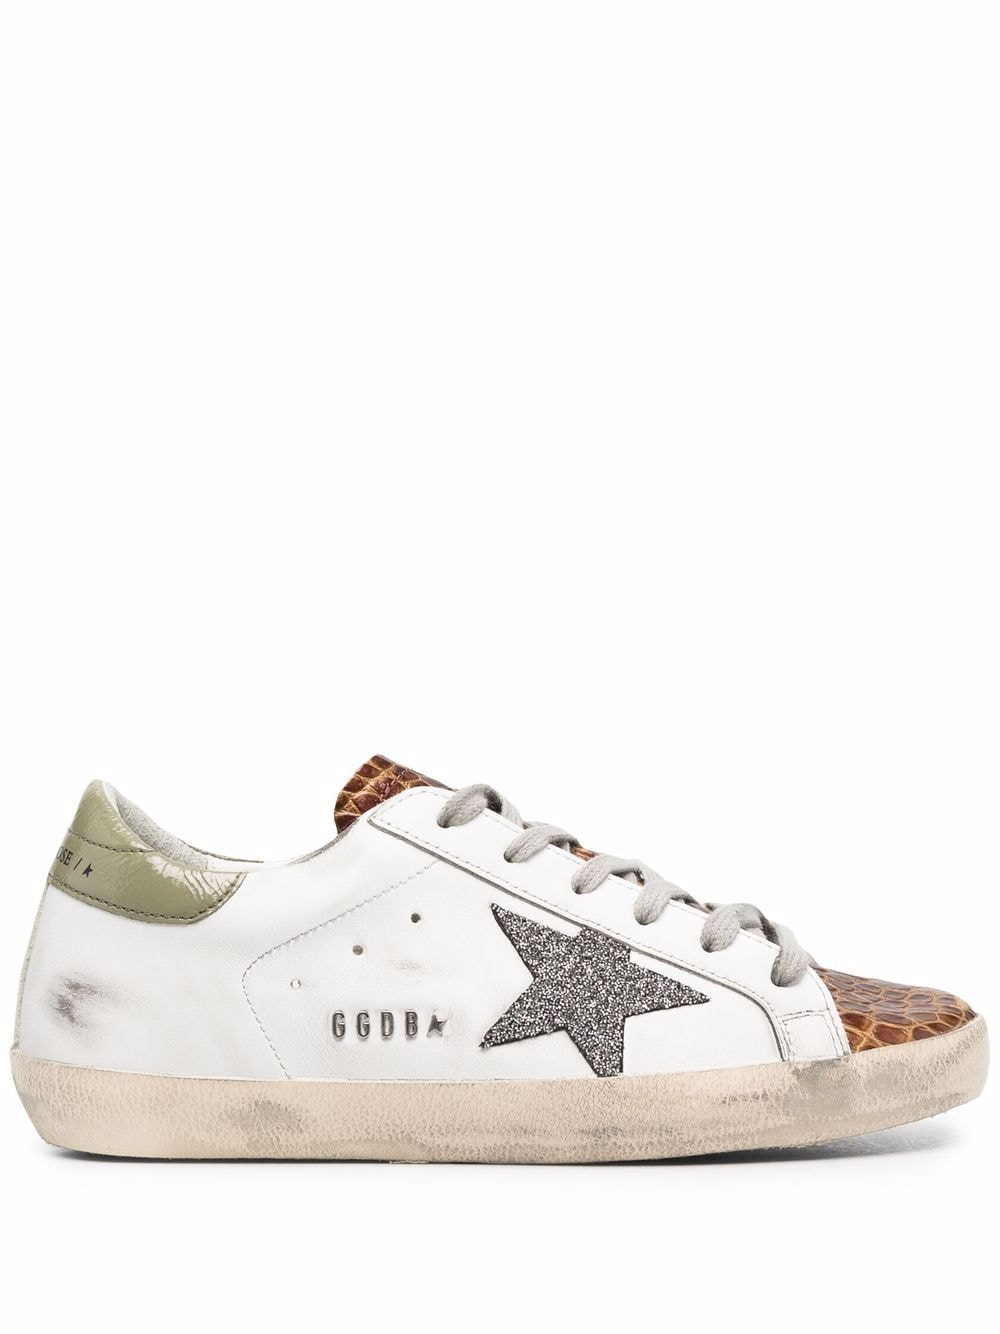 Picture of Golden Goose Deluxe Brand   Super-Star Low-Top Lace-Up Sneakers